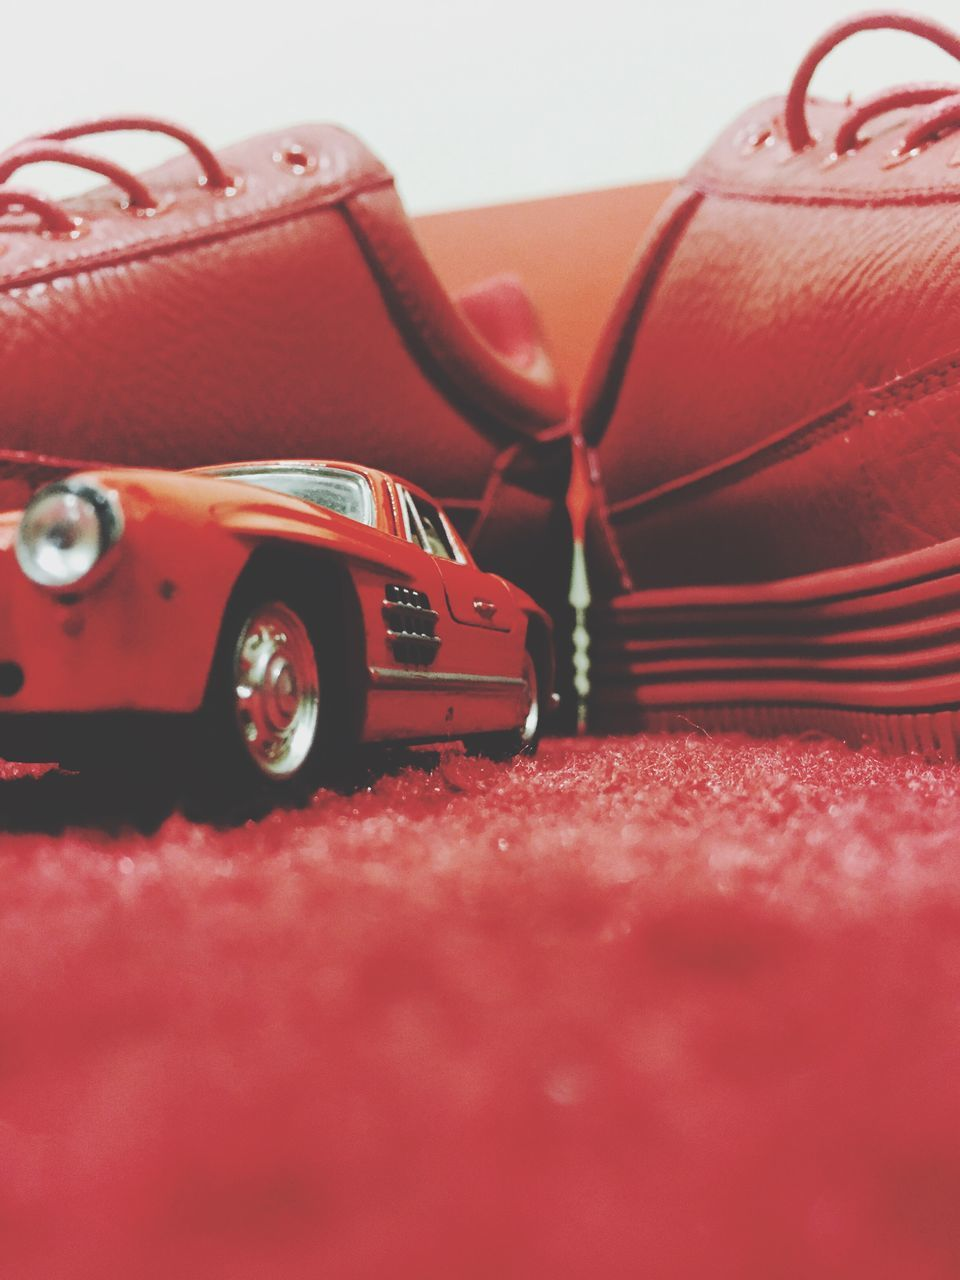 red, selective focus, still life, toy car, no people, close-up, indoors, day